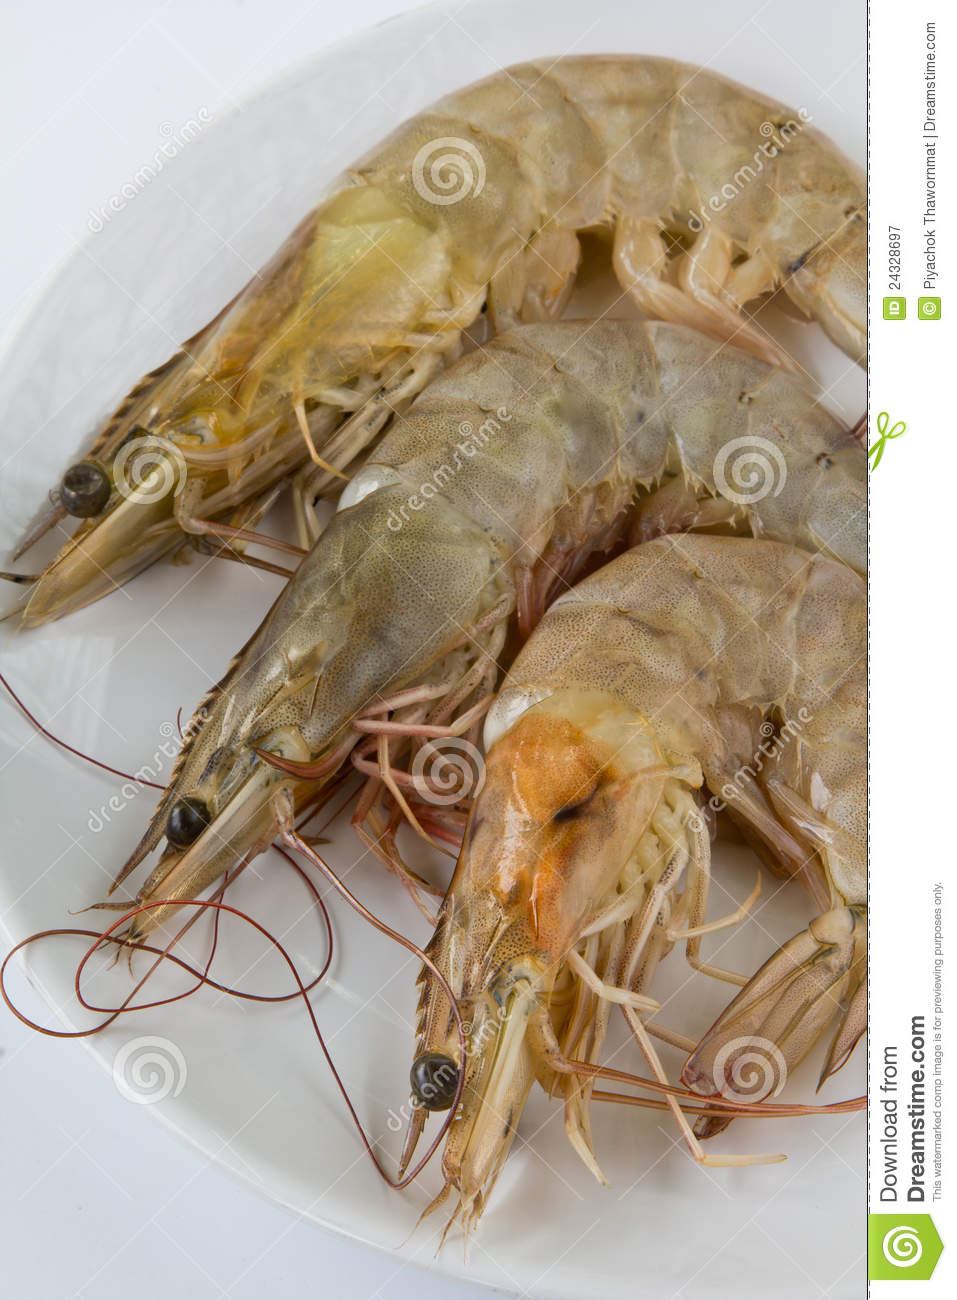 how to cook raw shrimp